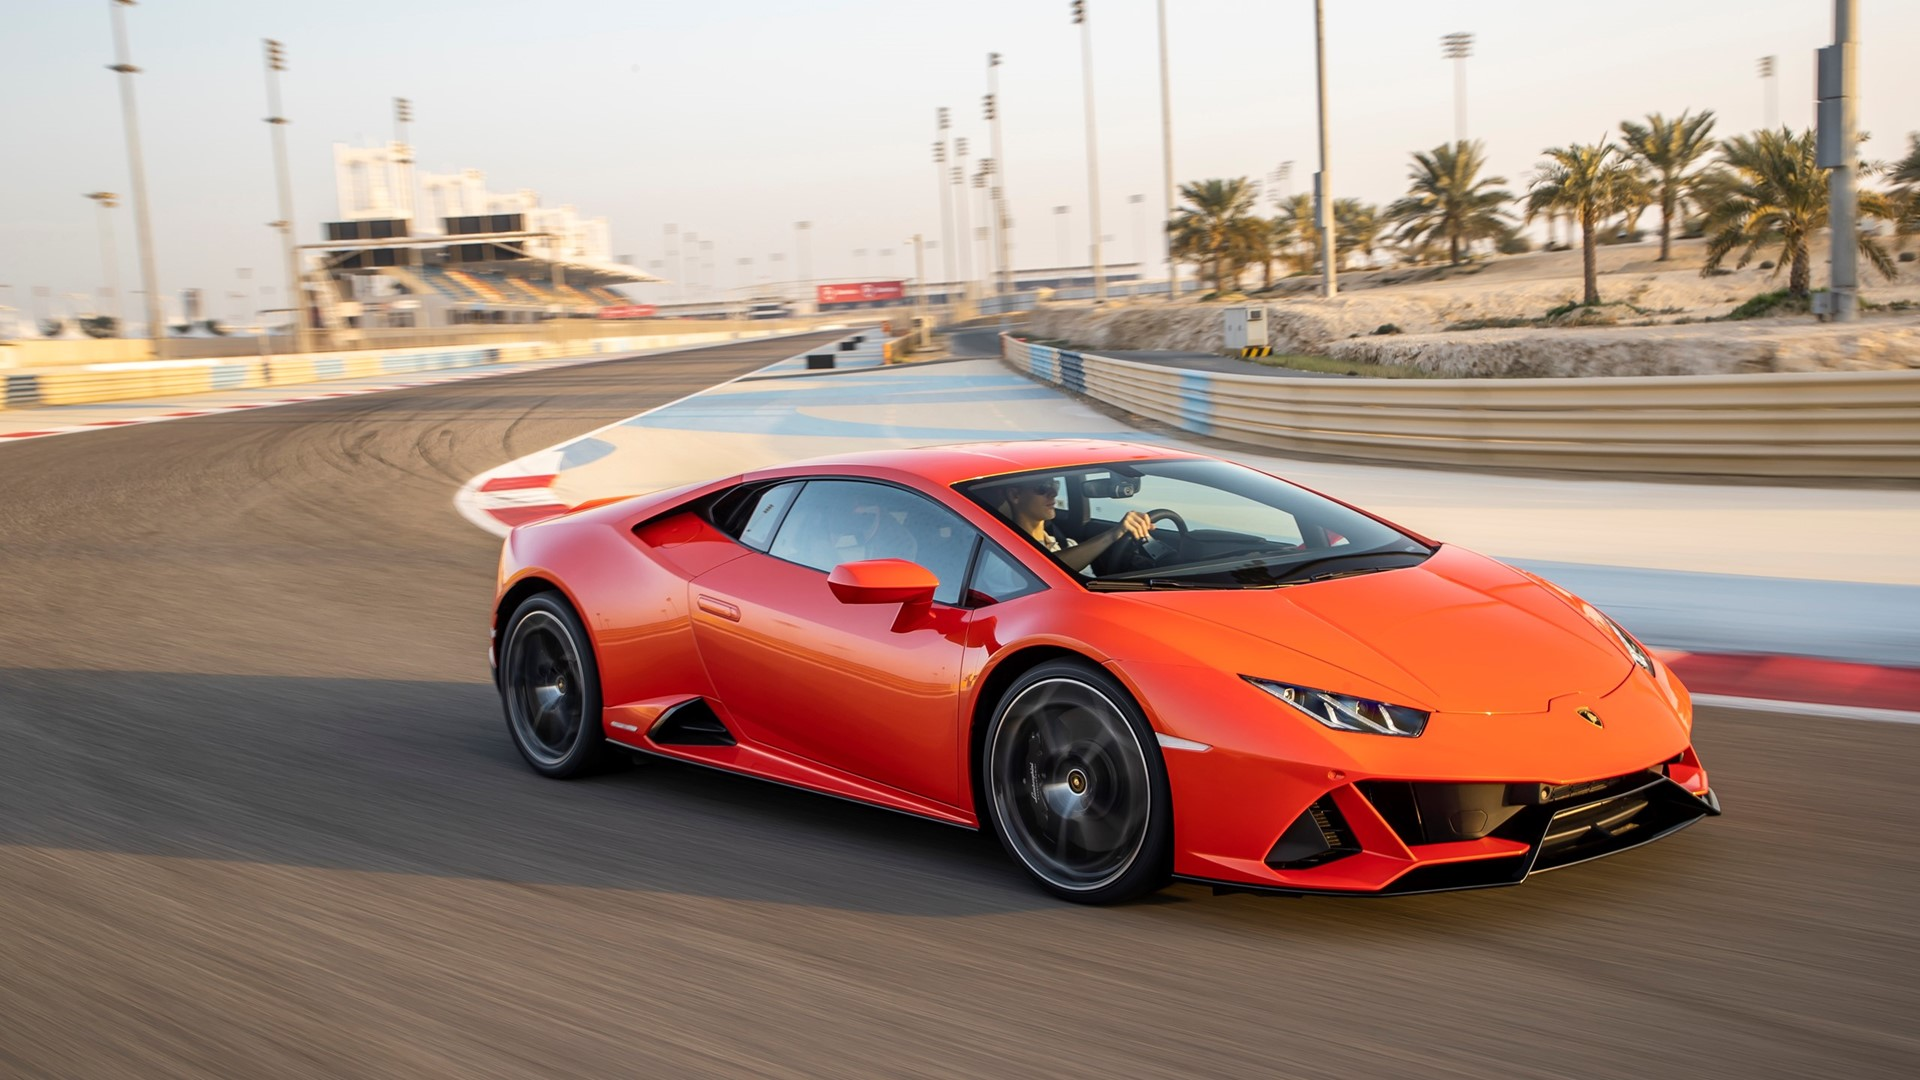 Automobili Lamborghini continues its global growth and marks new historic highs: 8,205 cars delivered in 2019 - Image 5